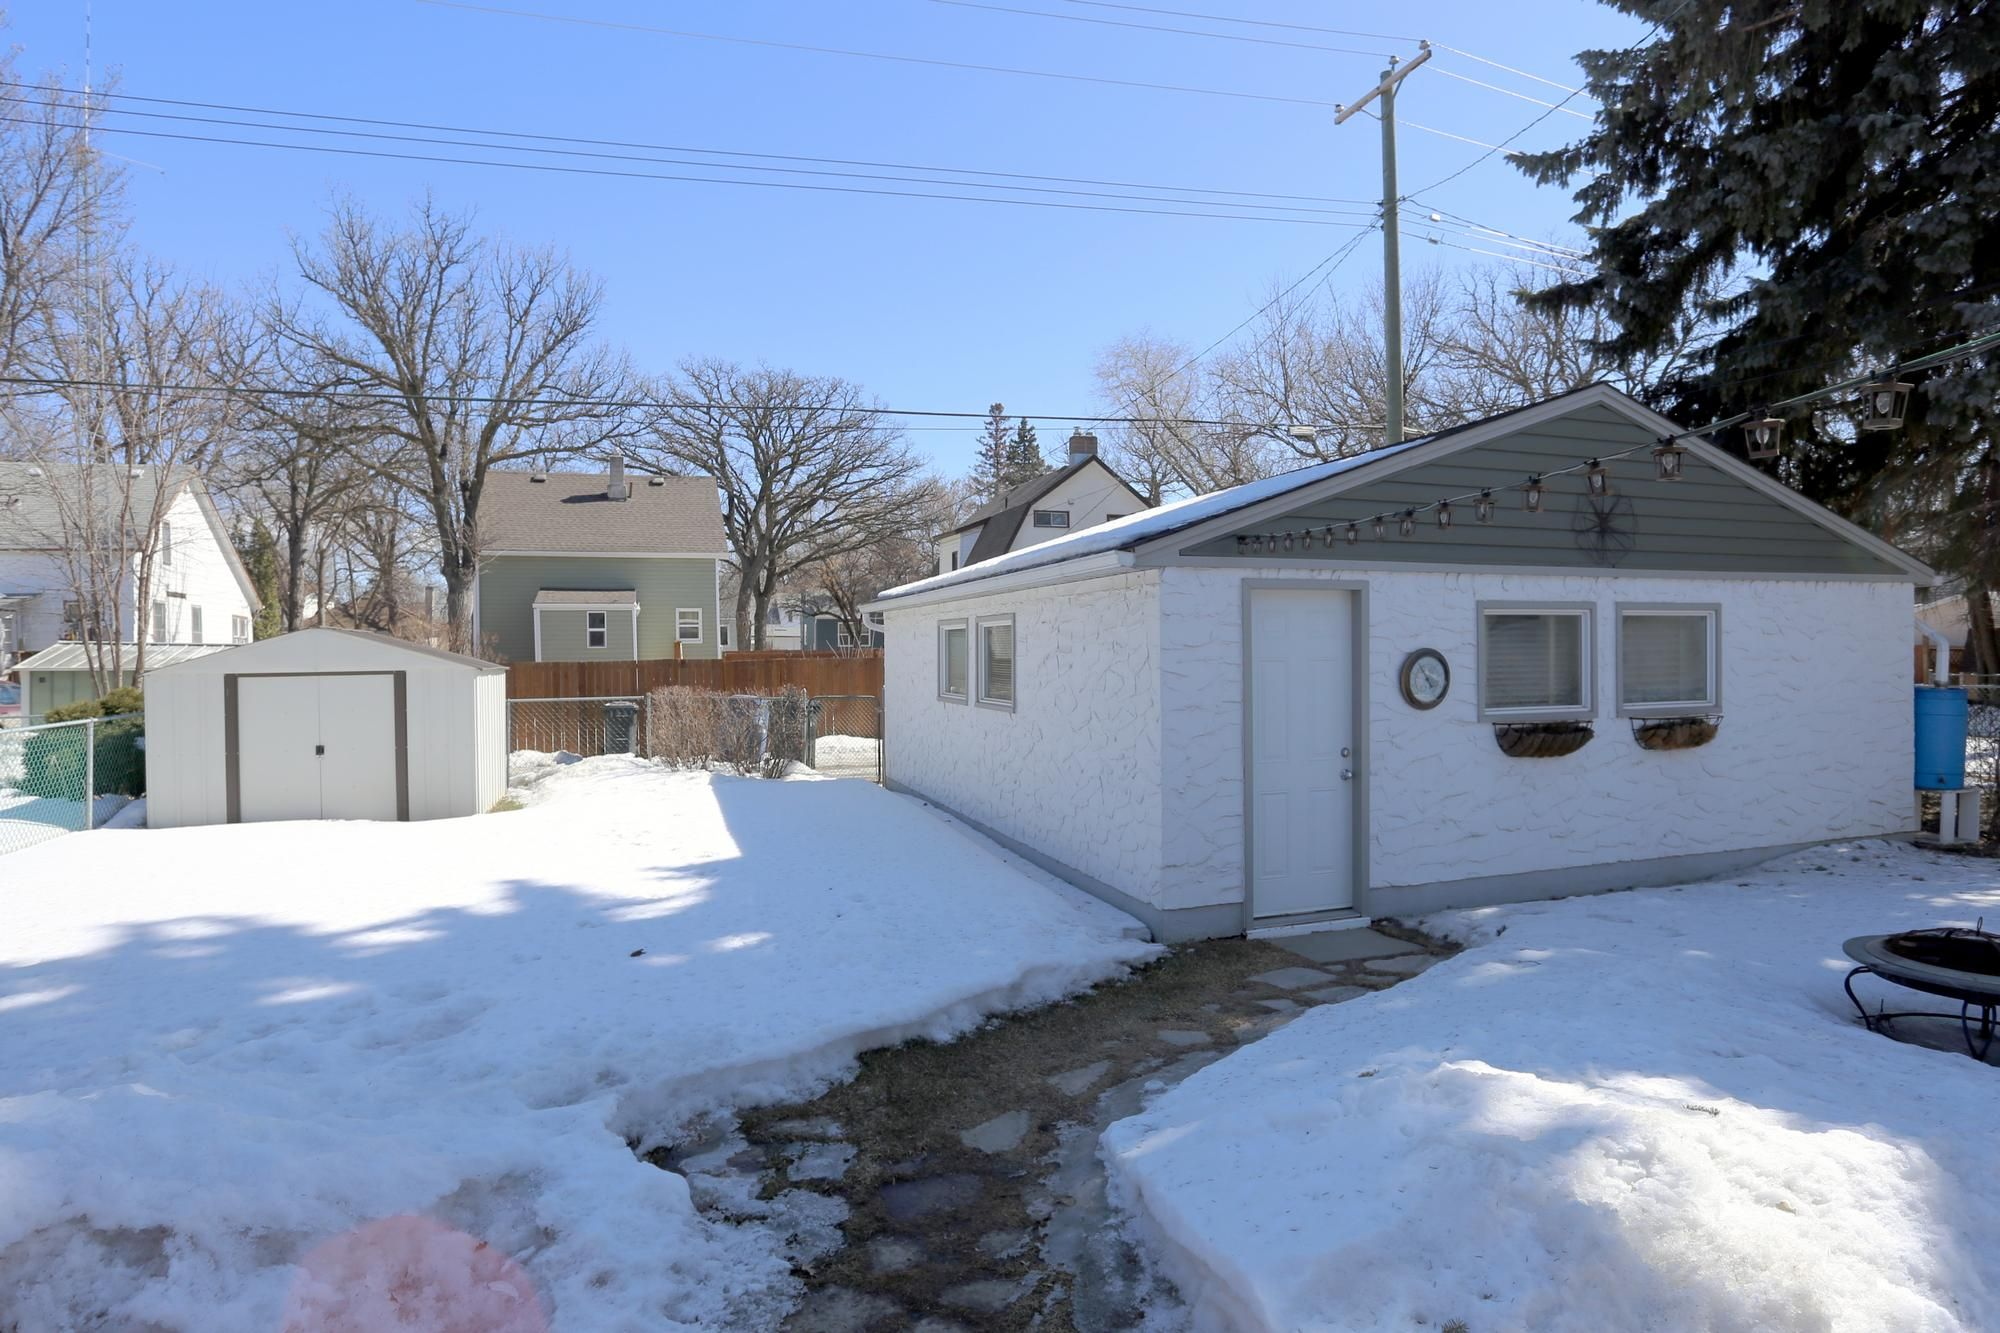 Photo 30: Photos: 349 Guildford Street in Winnipeg: St James Single Family Detached for sale (5E)  : MLS®# 1807654